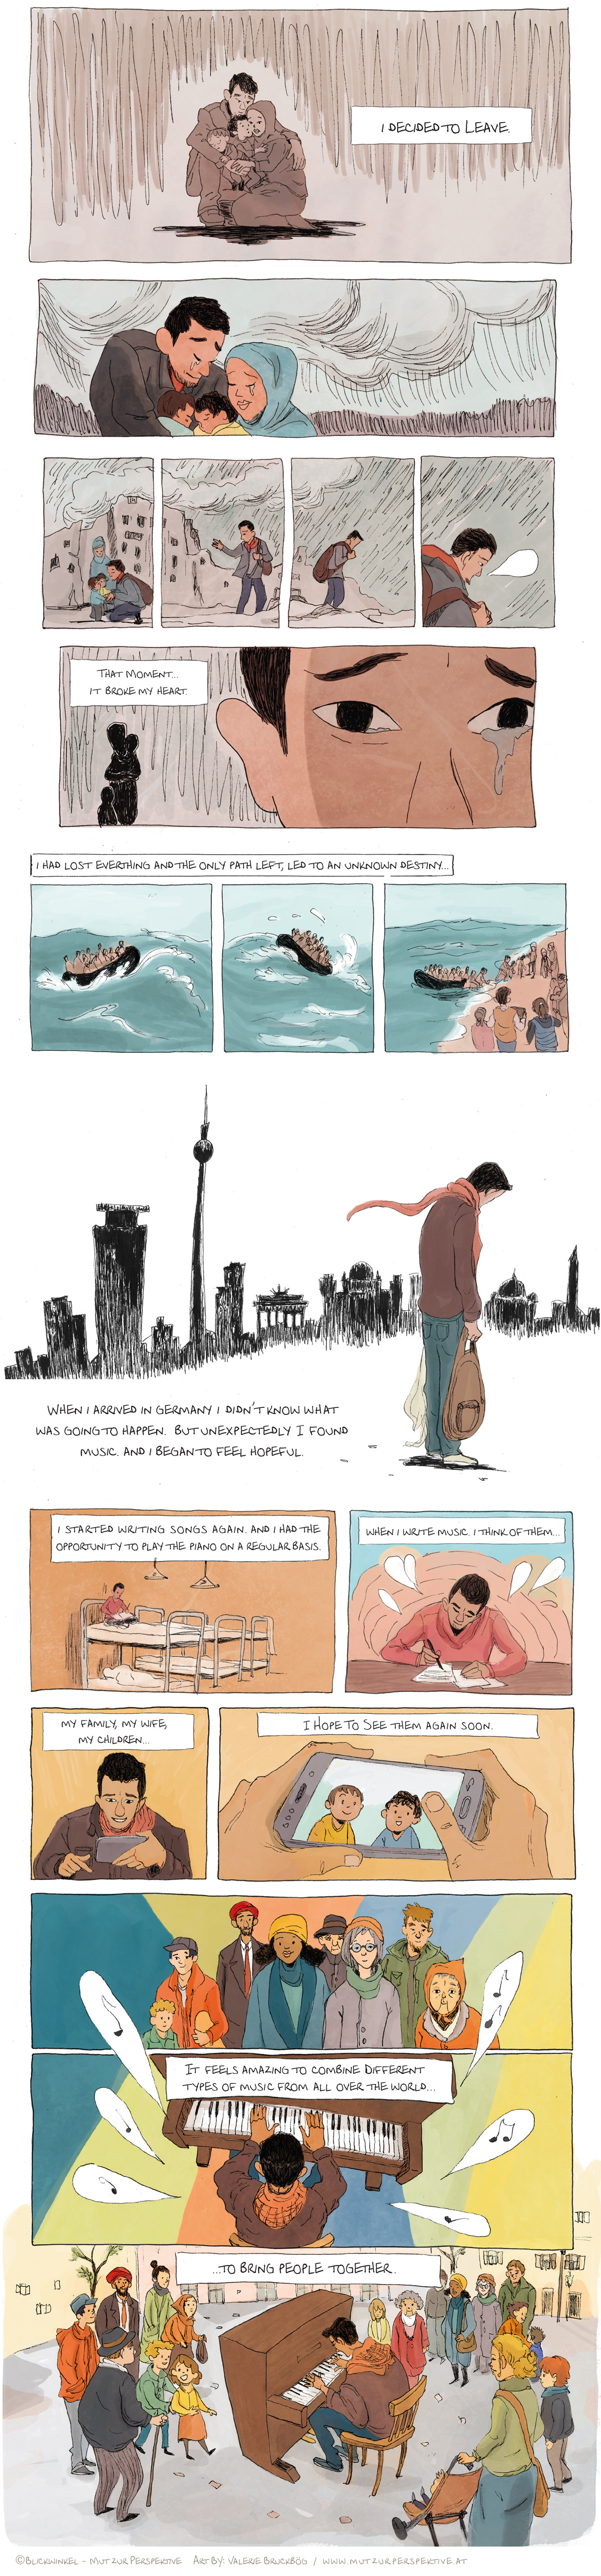 Blickwinkel - Mut zur Perspektive created this Comic based on an Interview with Aeham Ahmad. The Artwork was created by Illustrator and Comic Artist Valerie Bruckbög. Interview by Anna Achleitner and Kathrin Kaisinger.